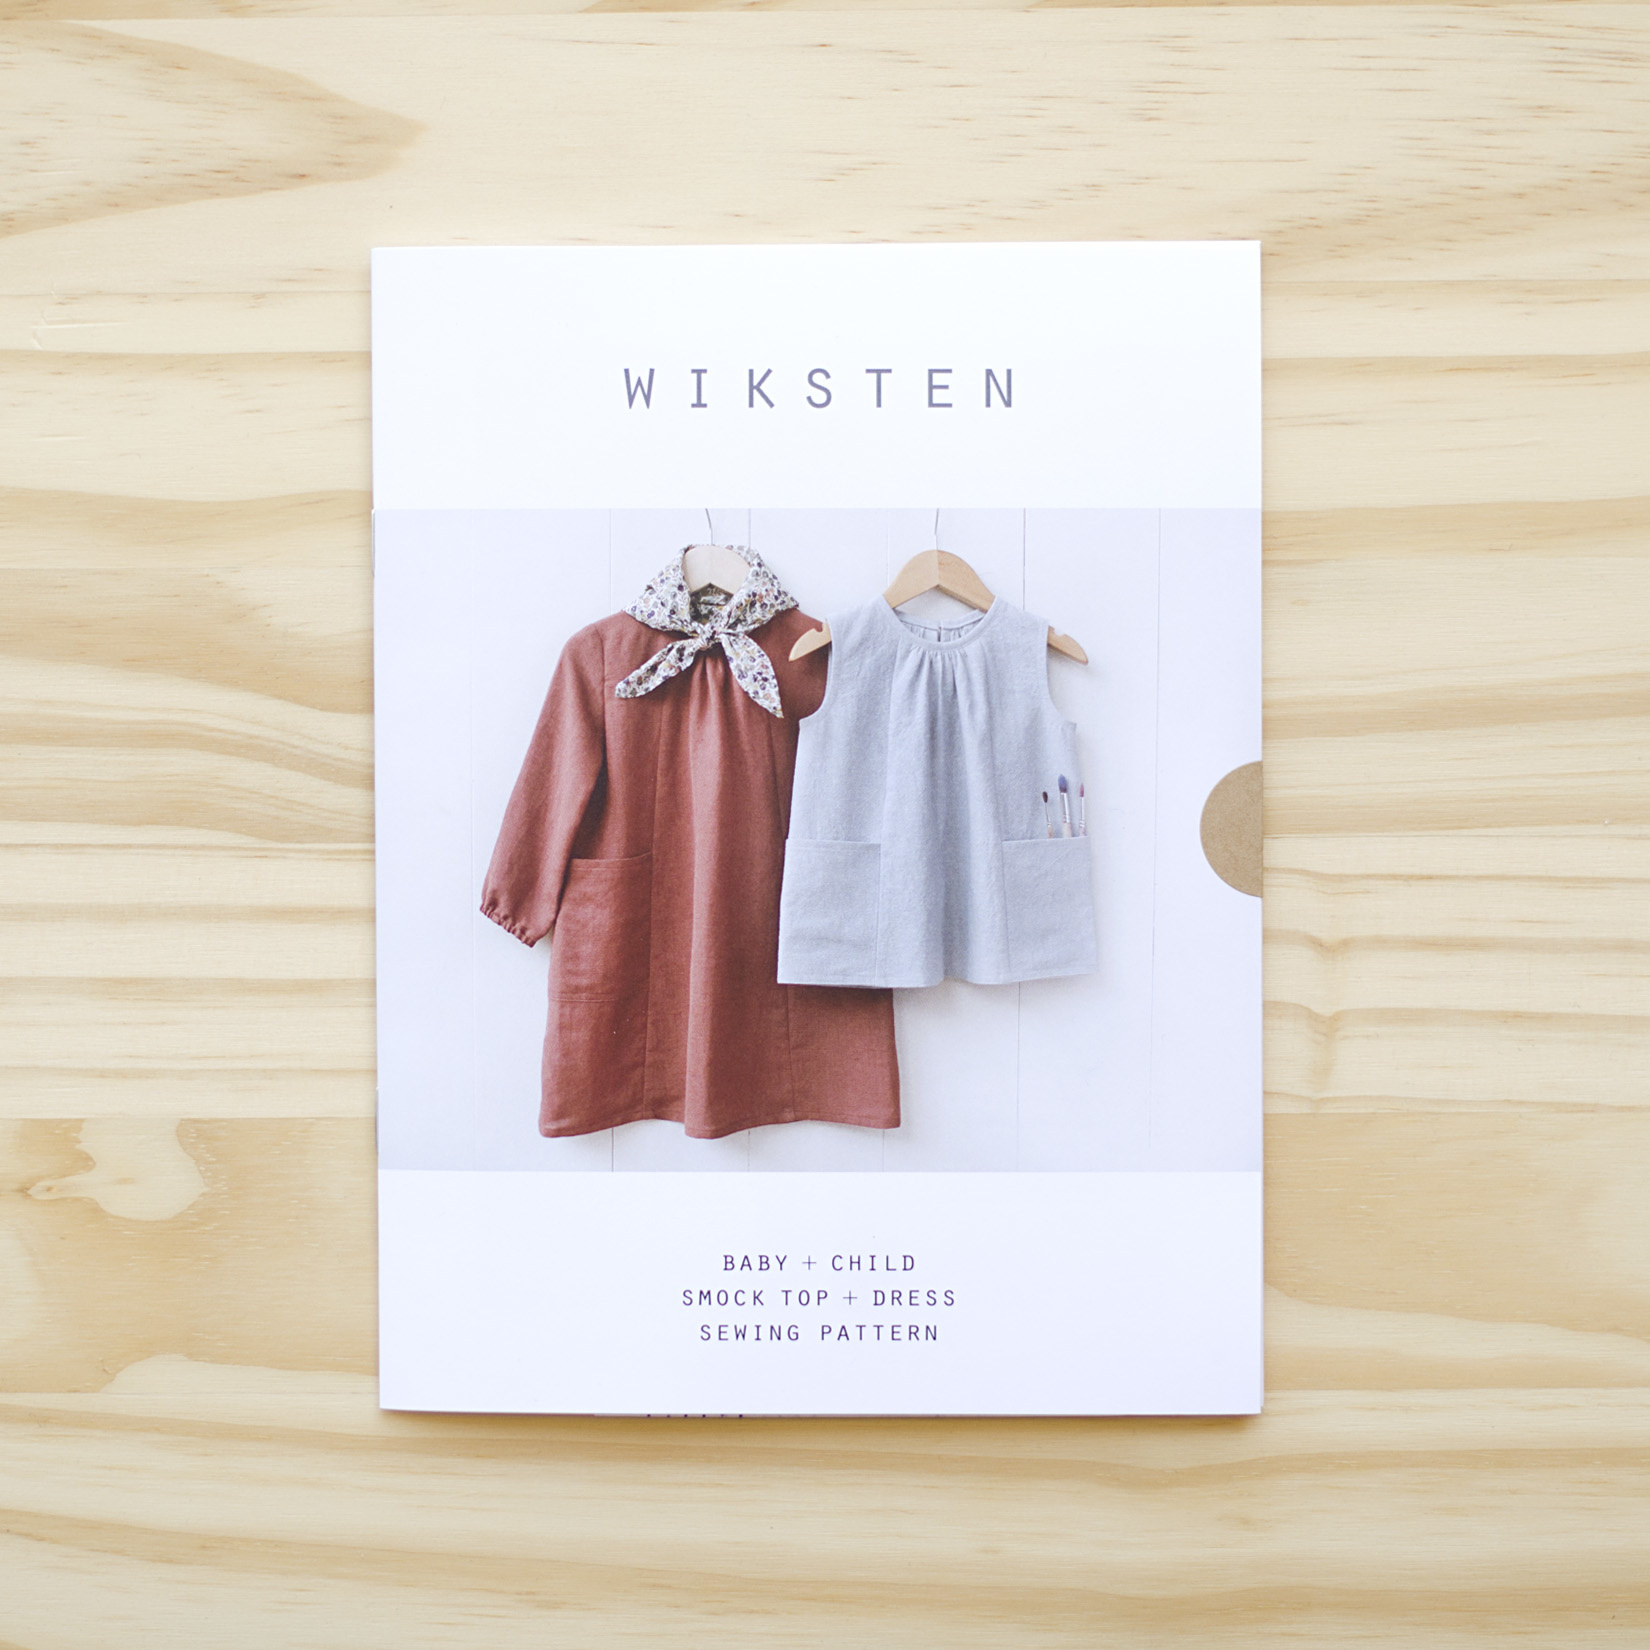 Wiksten : Sewing Pattern : Baby and Child Smock Top + Dress